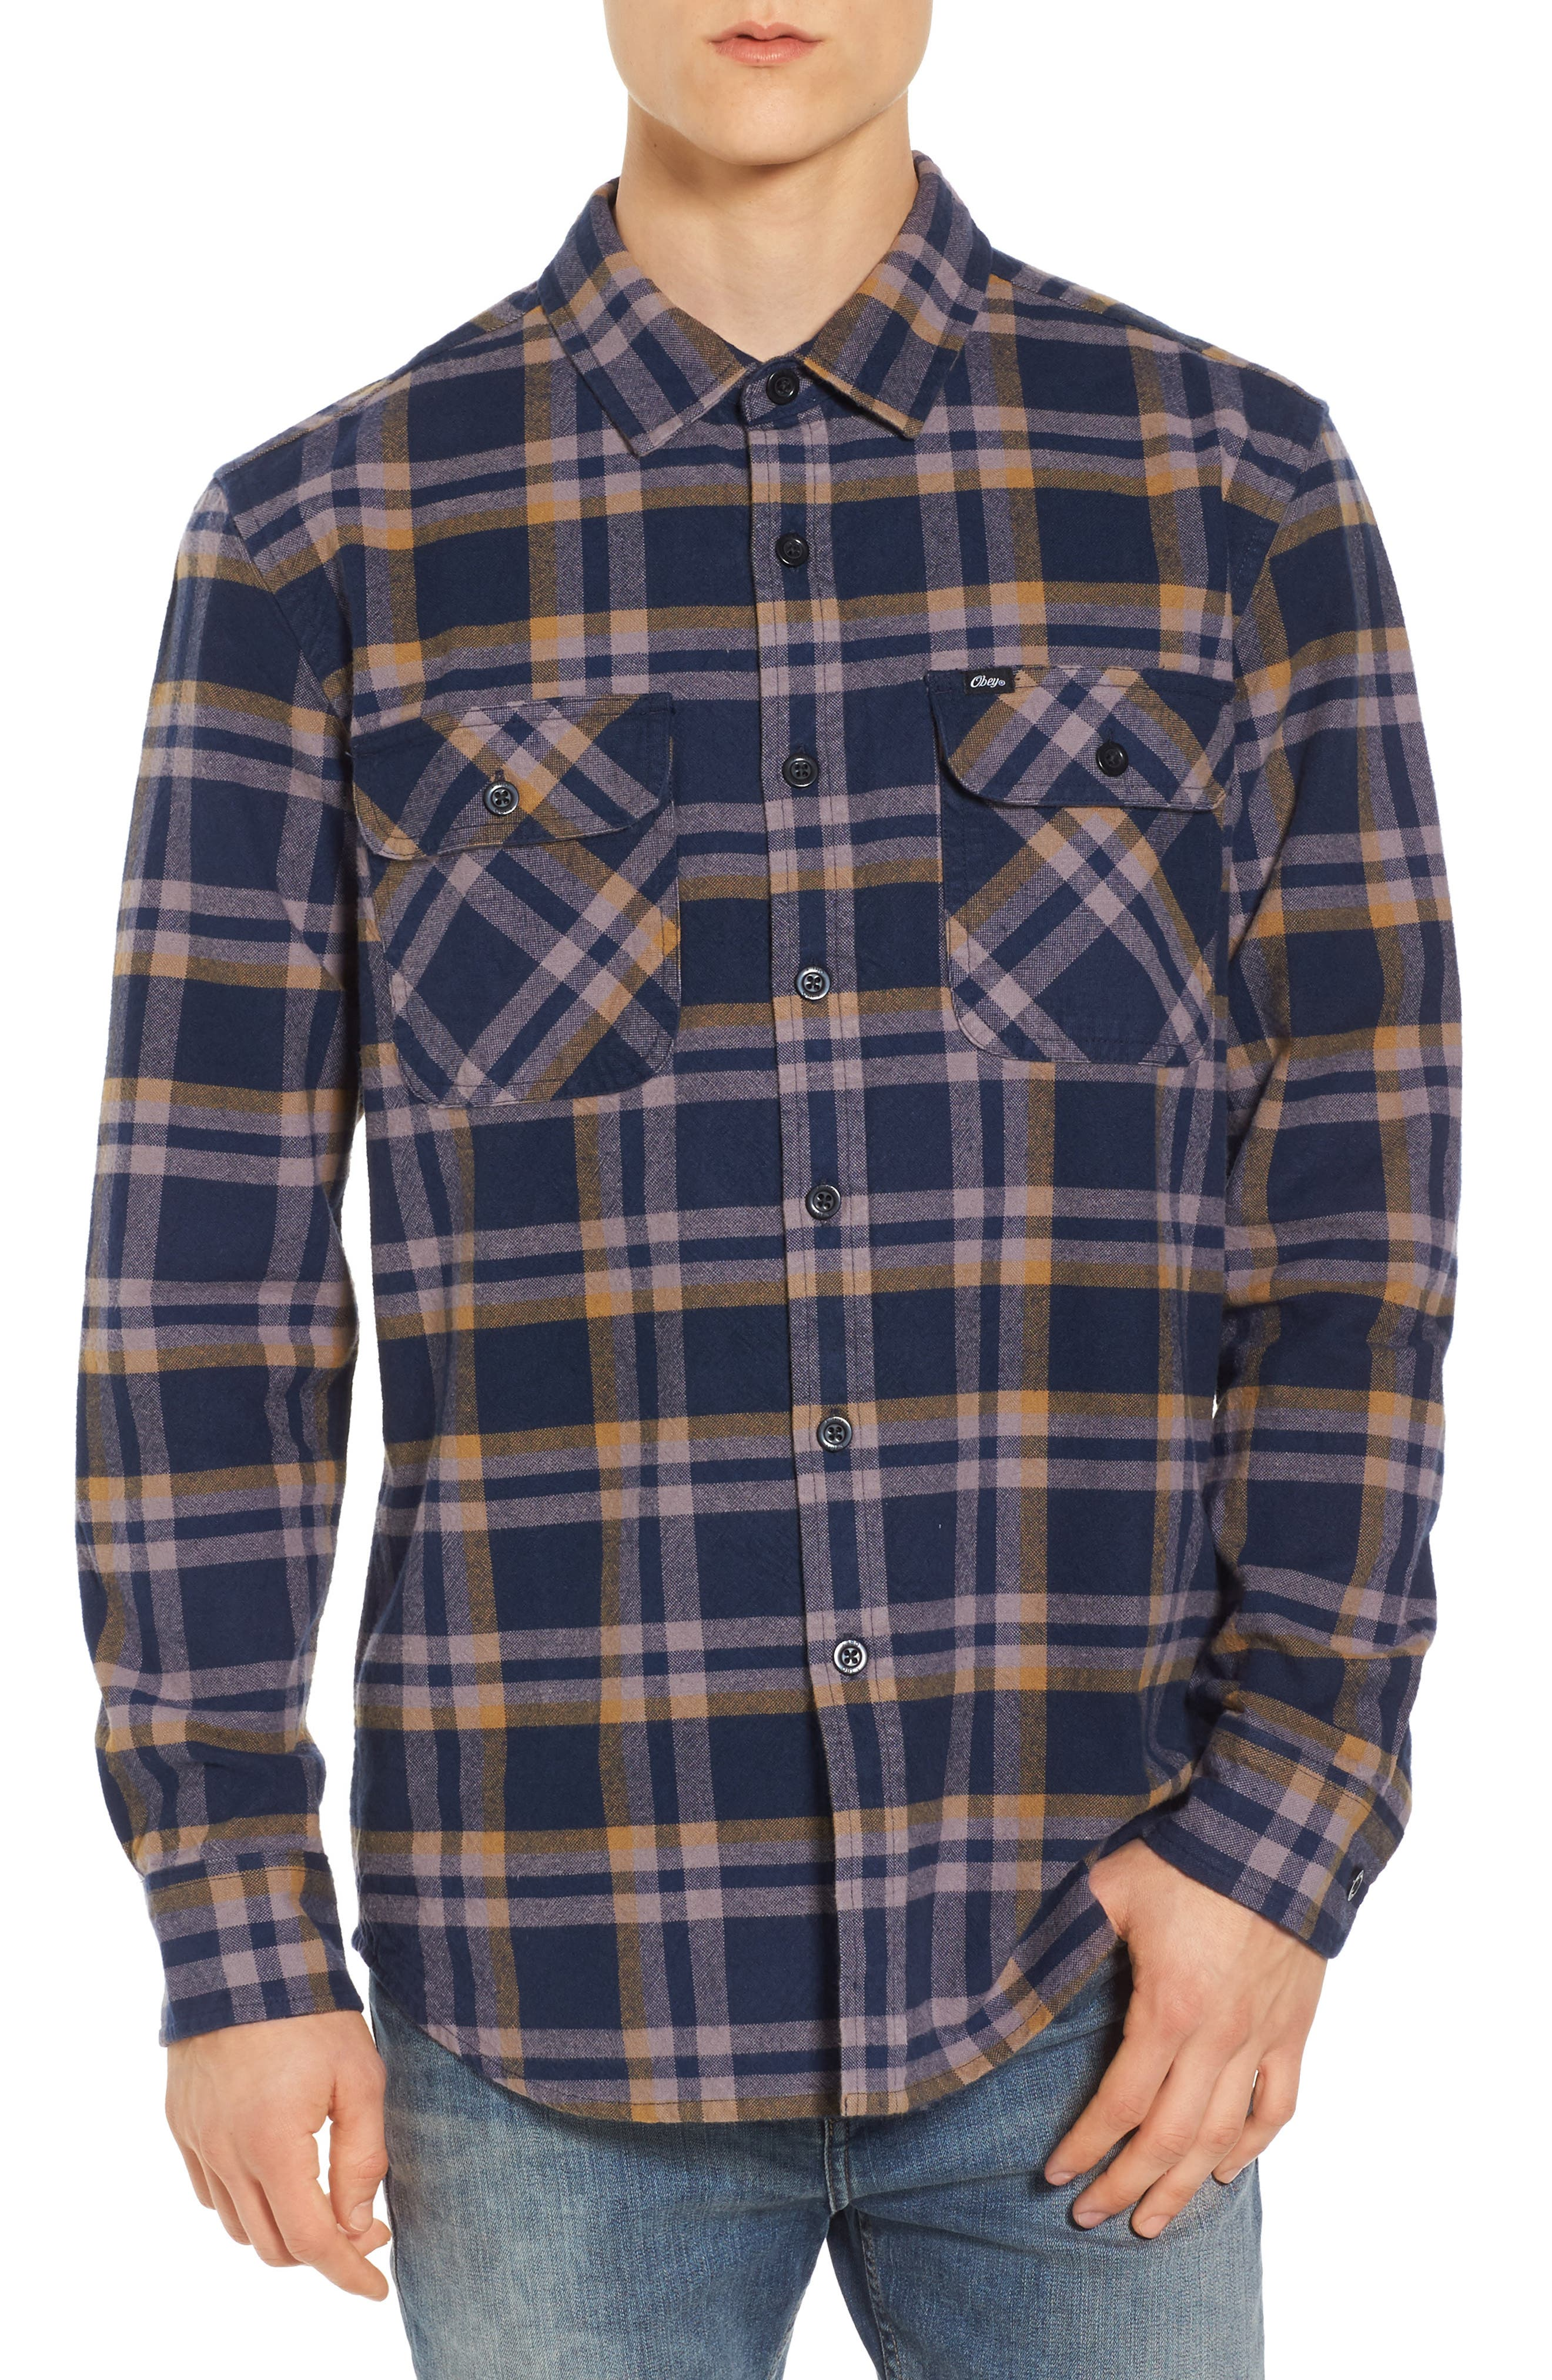 Alternate Image 1 Selected - Obey Plaid Flannel Shirt